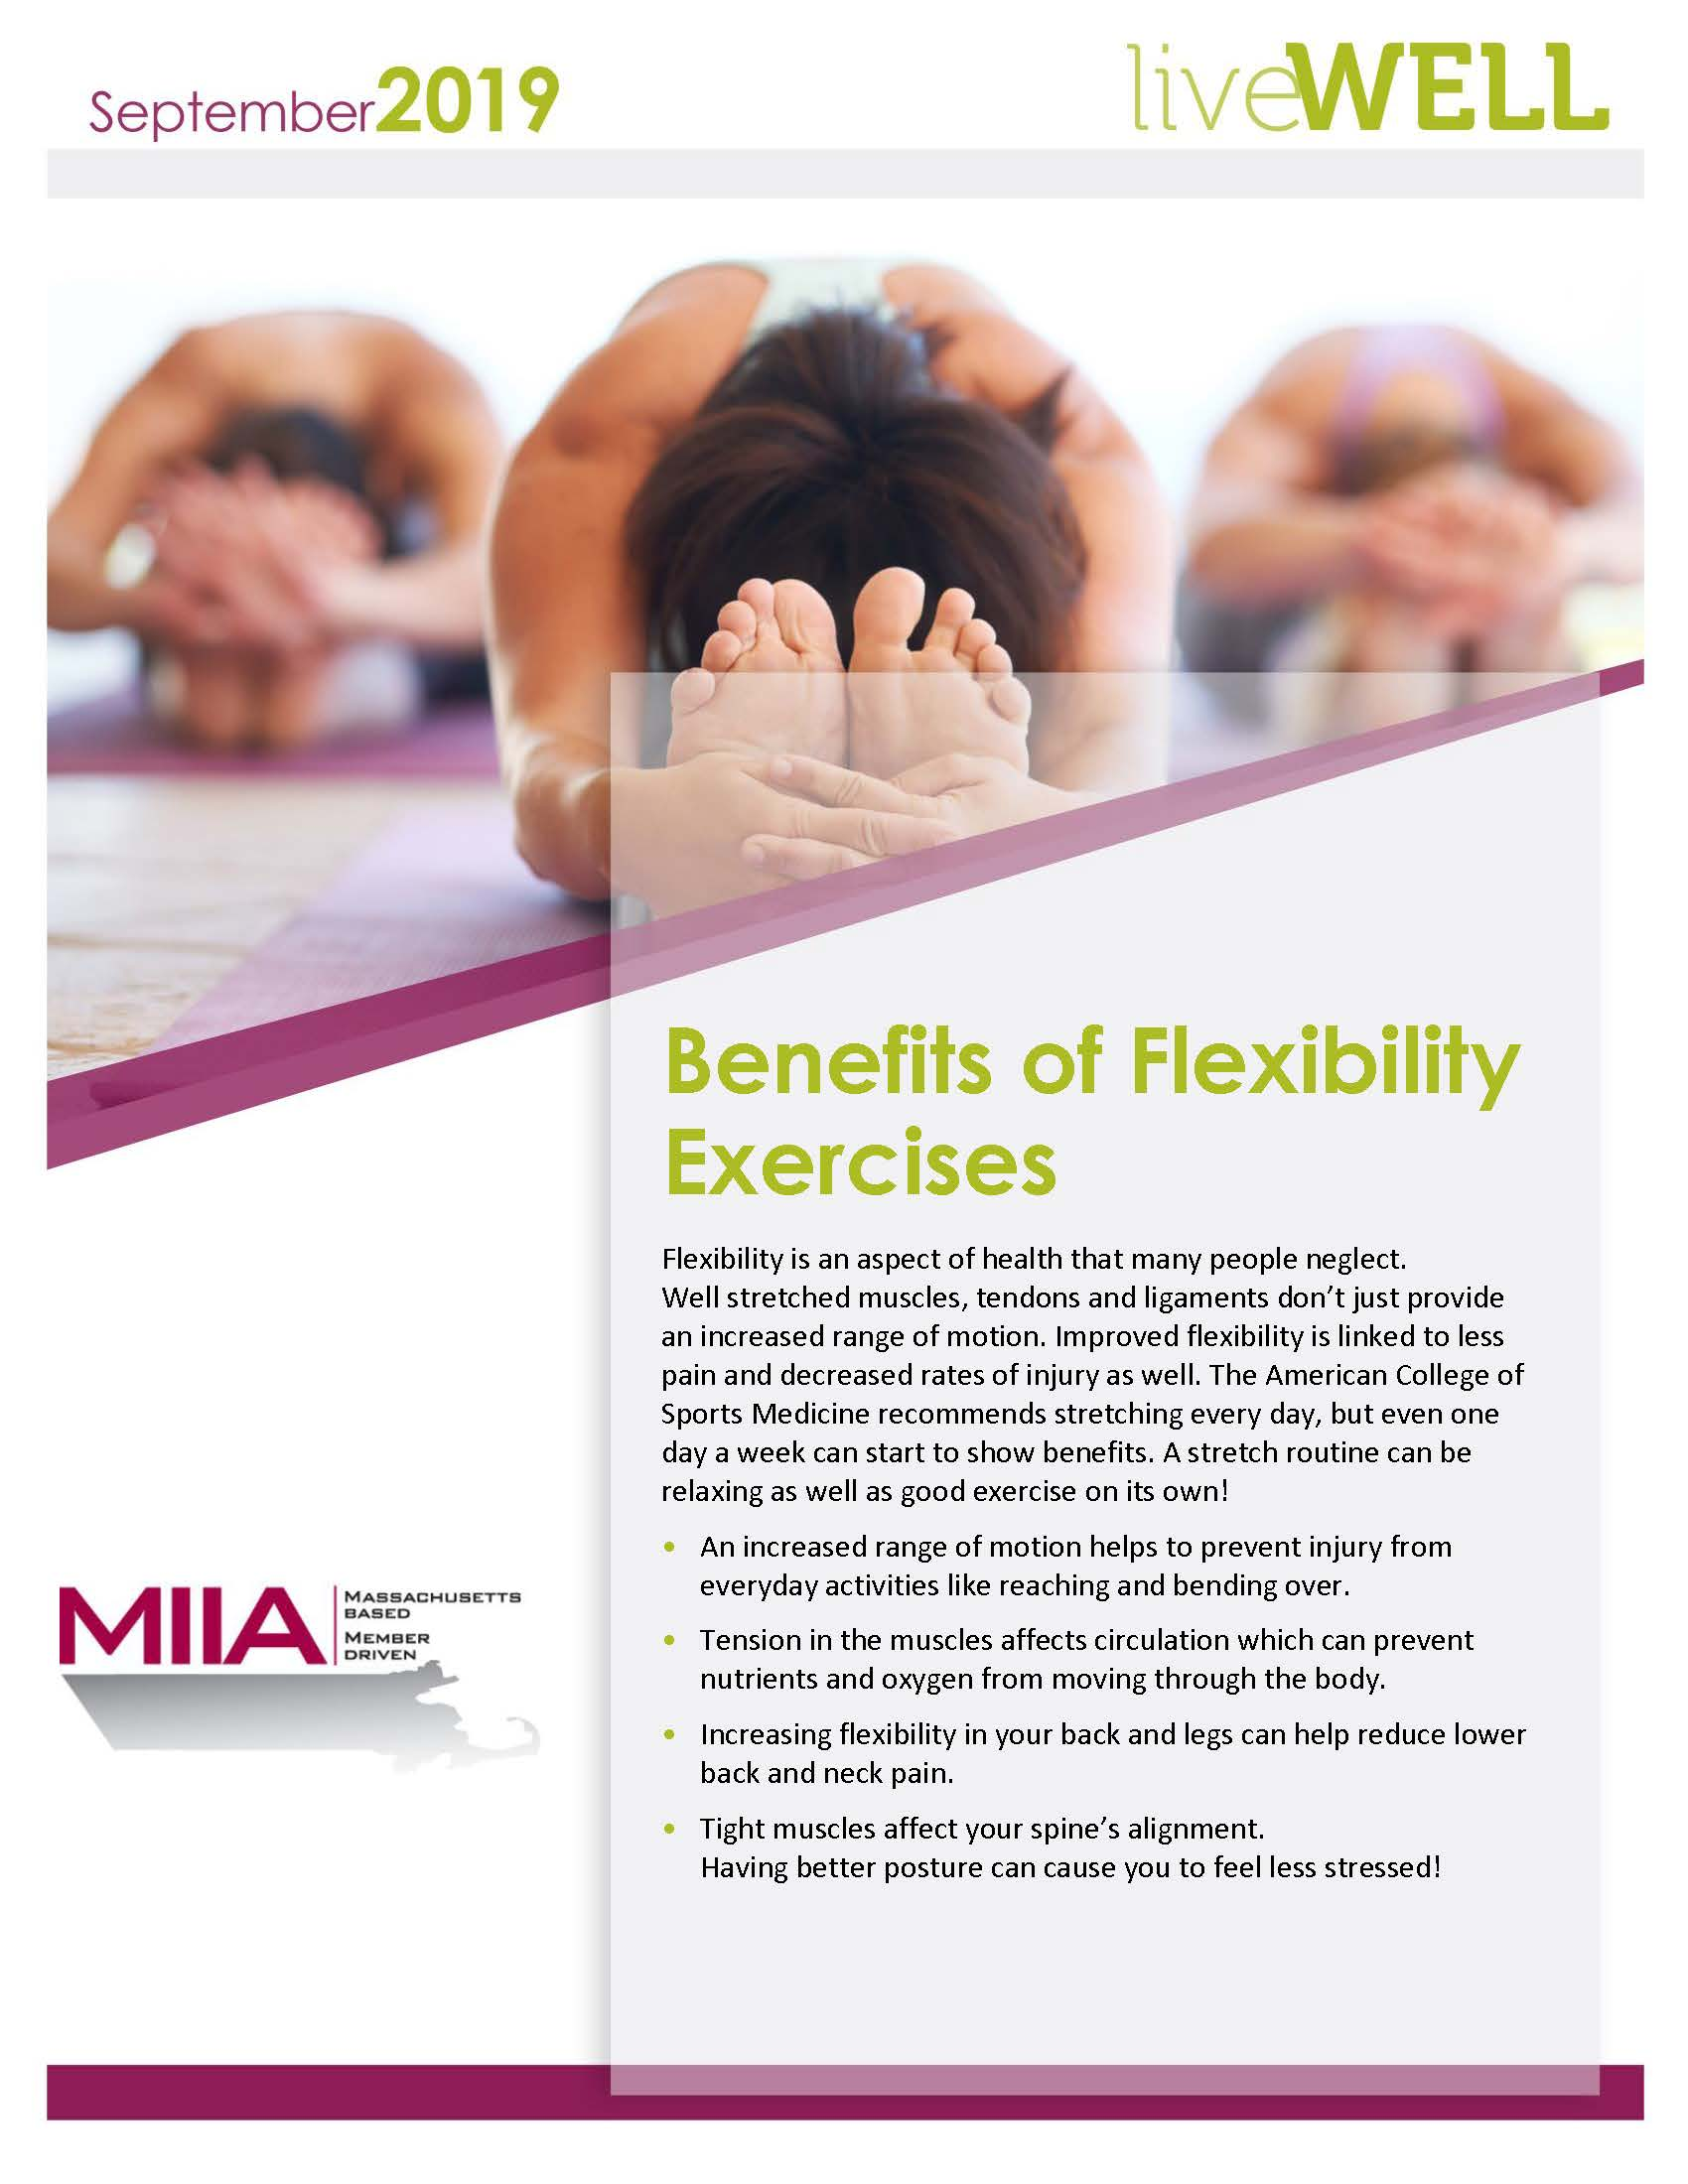 MIIA Wellness September 2019 - Benefits of Flexibility Exercises